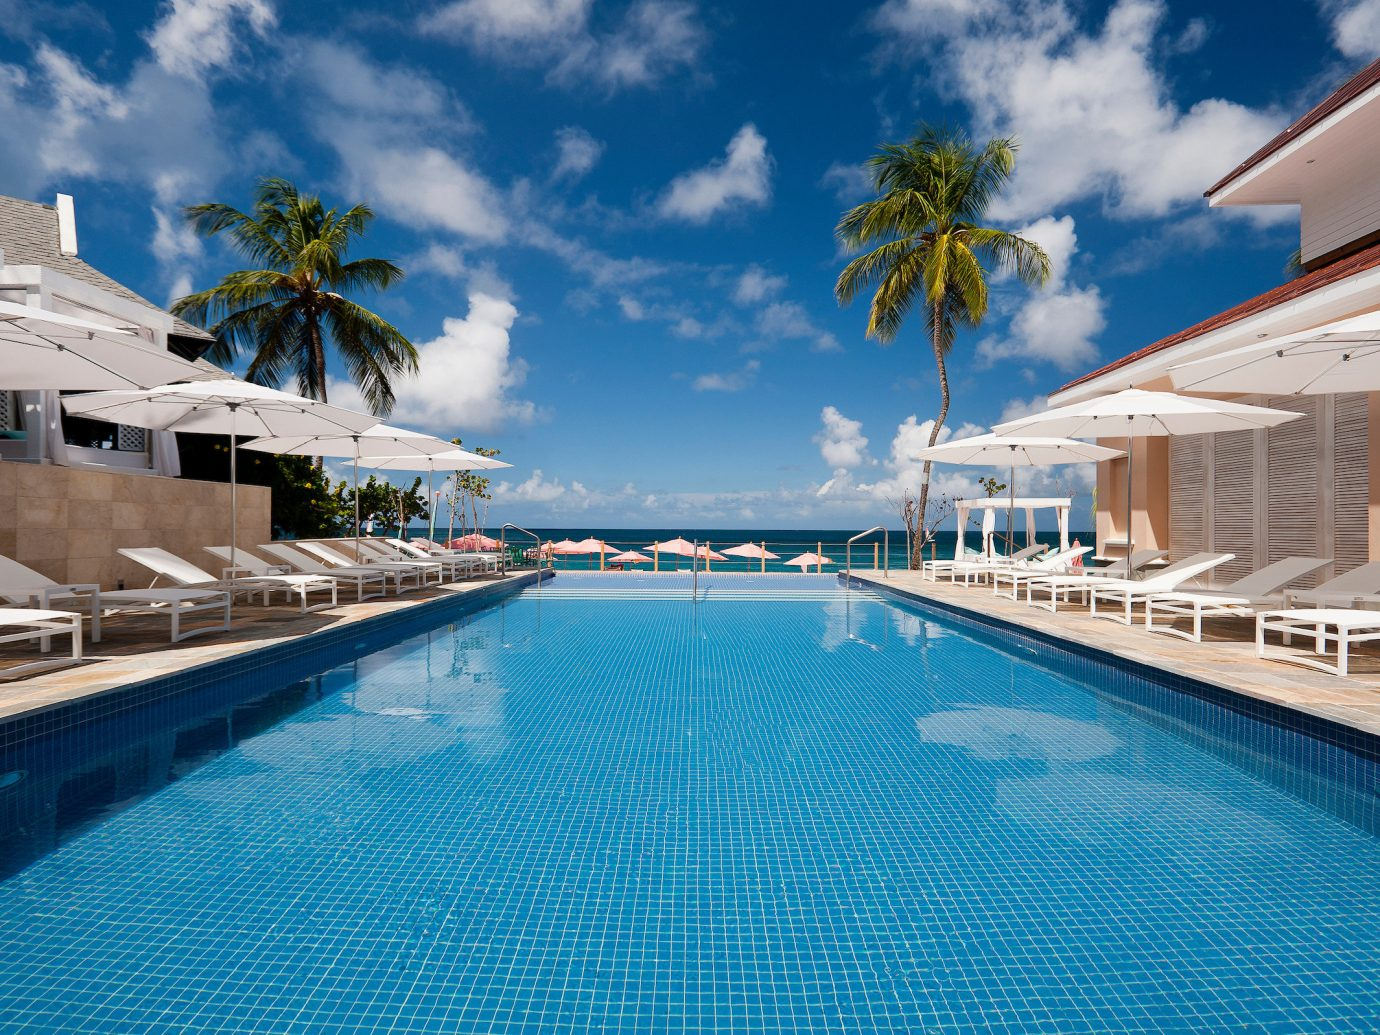 Pool at BodyHoliday, St. Lucia